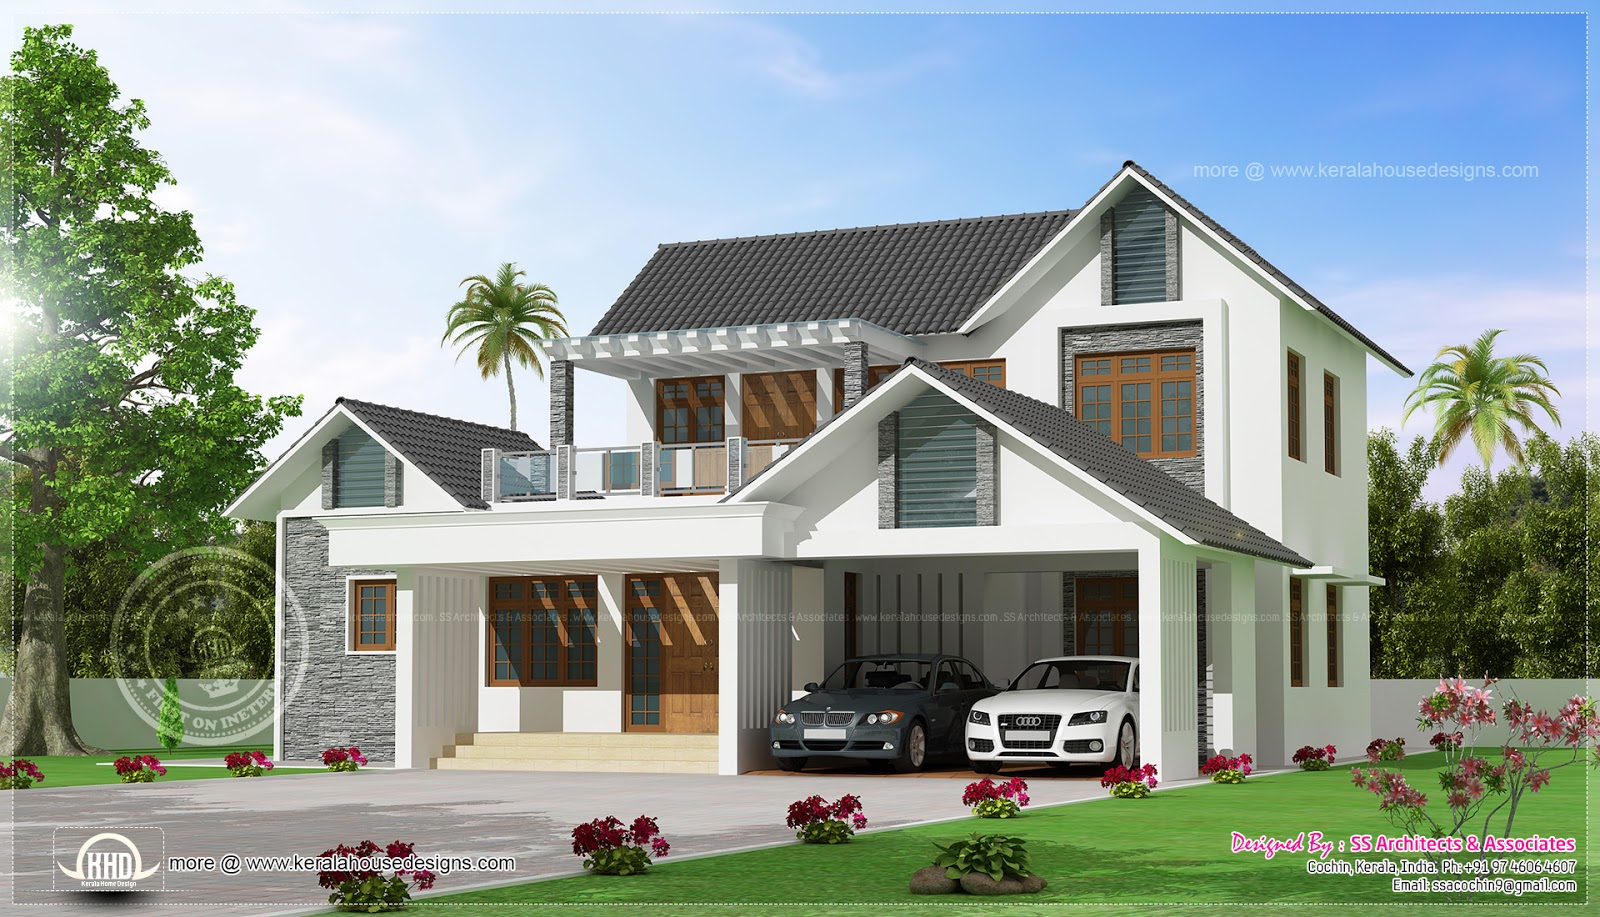 Awesome modern villa exterior elevation kerala home design and floor plans for Awesome home designs